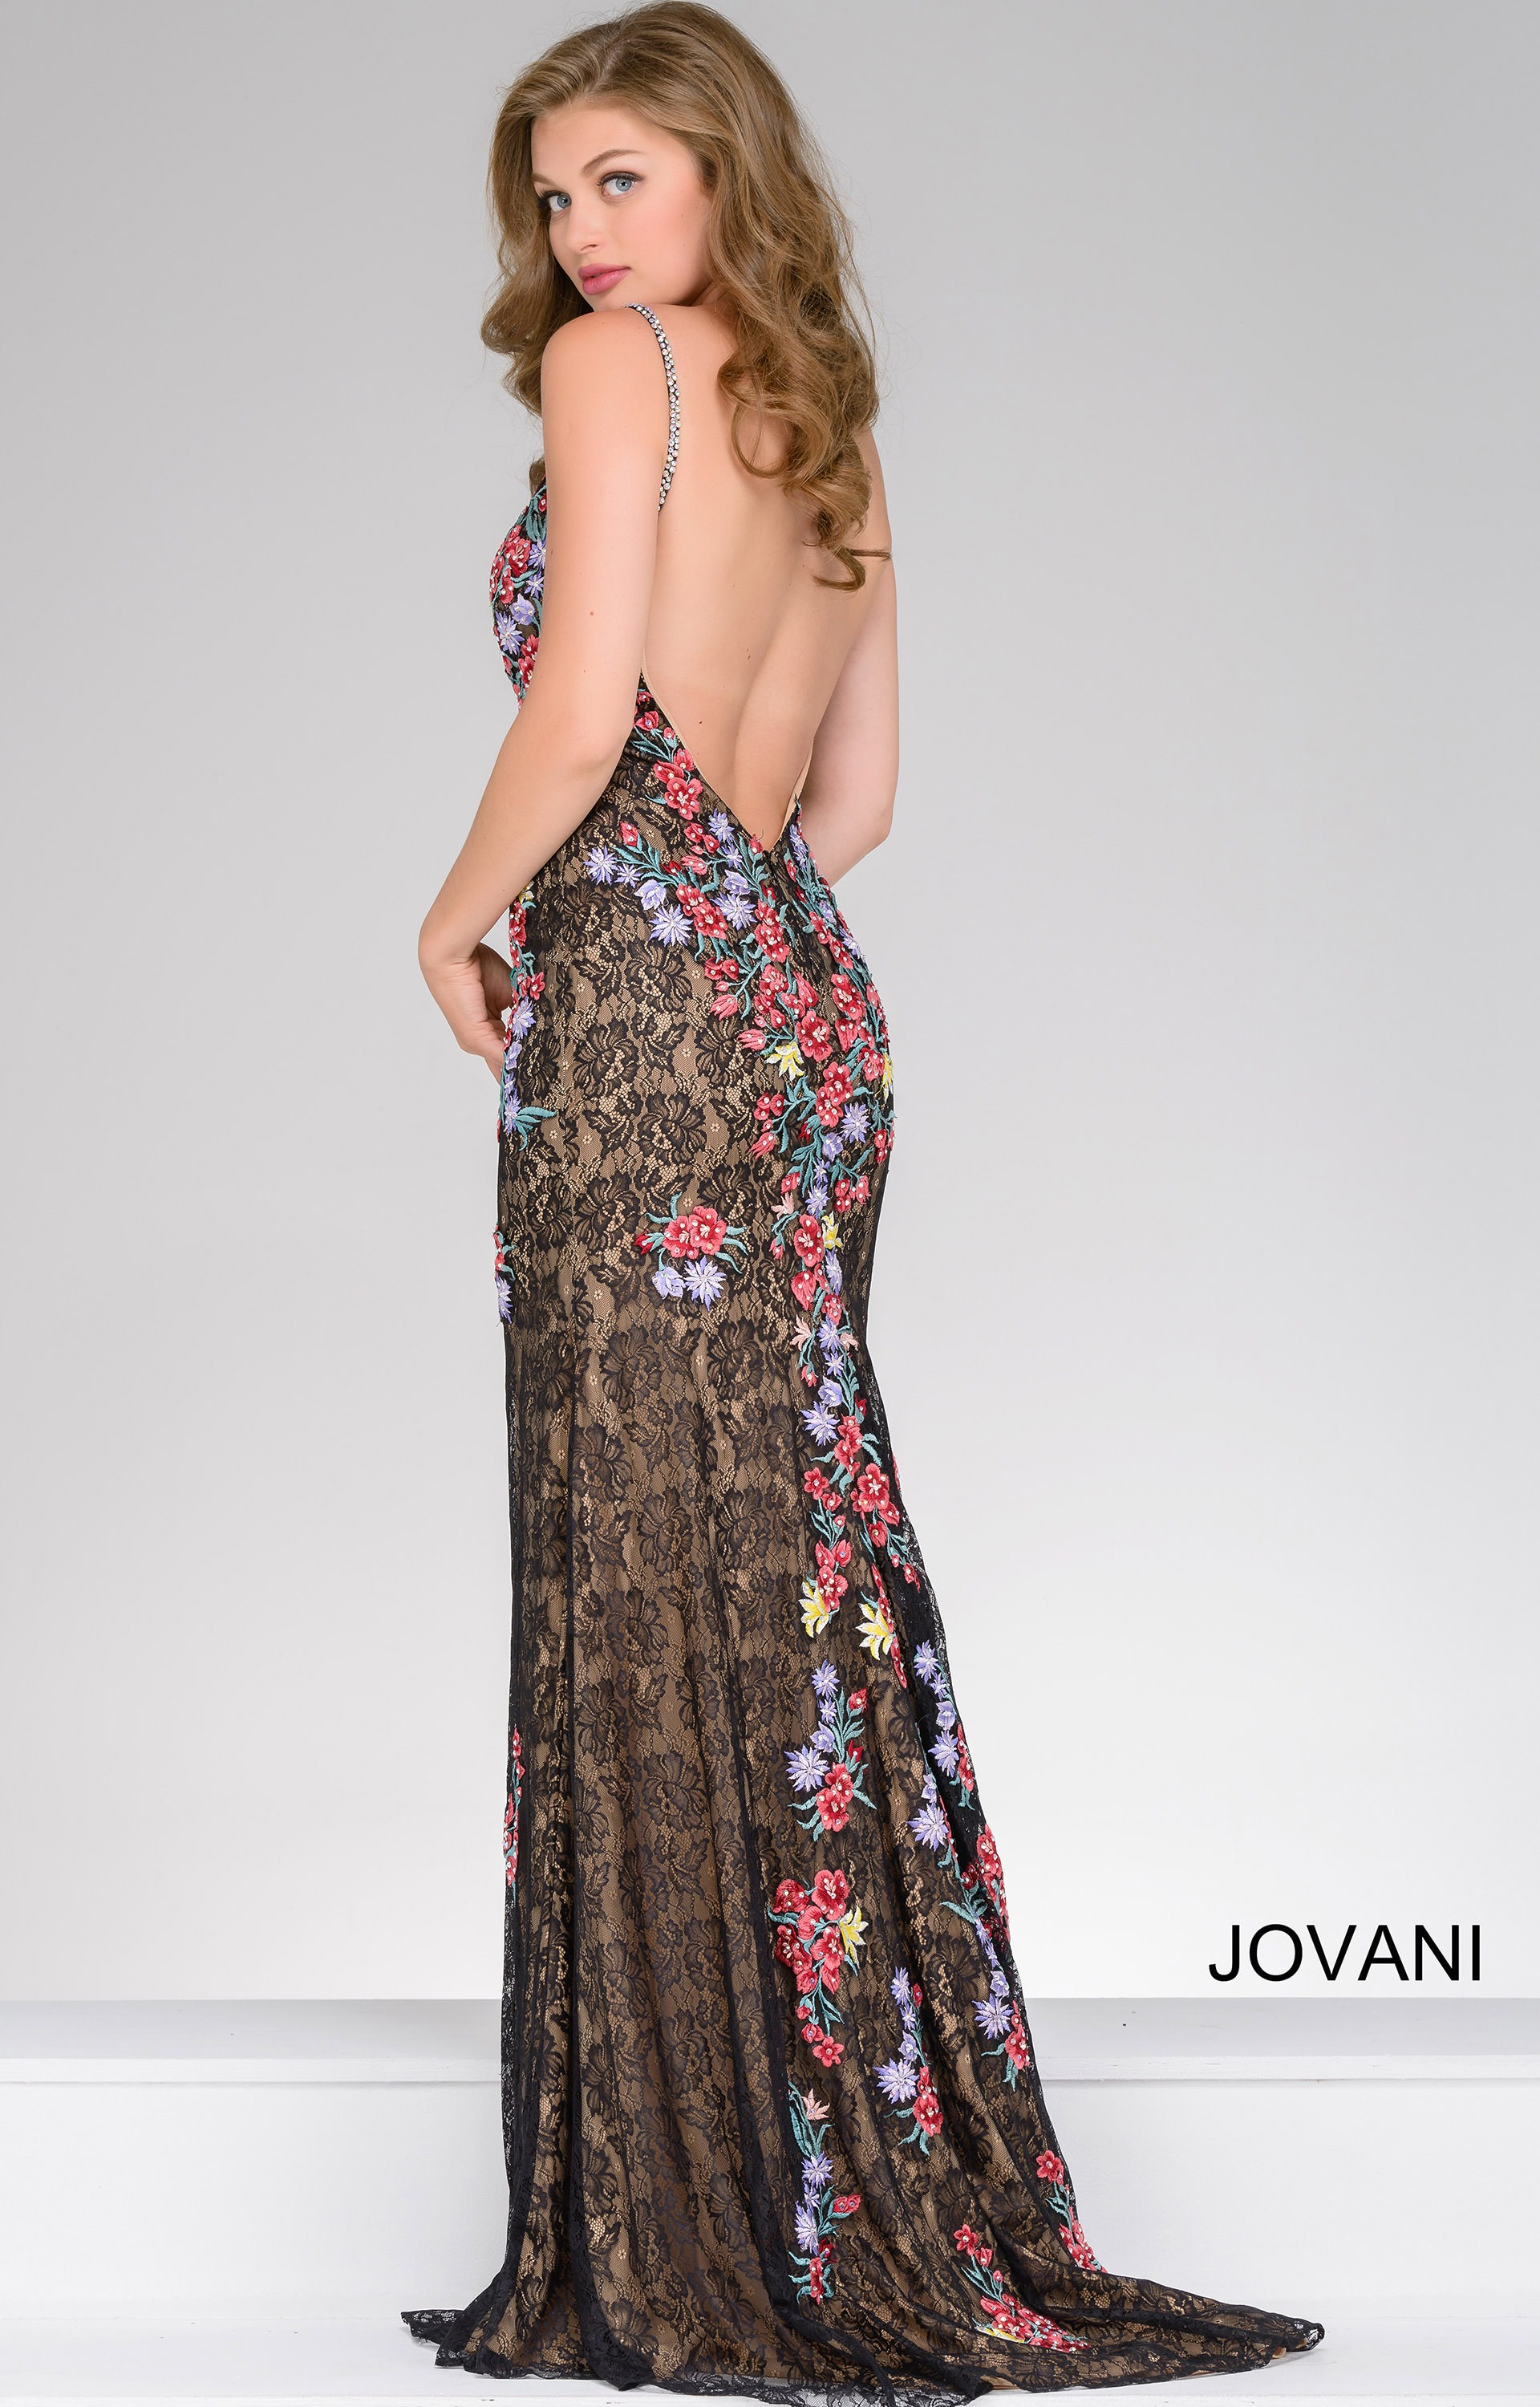 Jovani 48893 - Embroidered Floral and Lace Dress Prom Dress